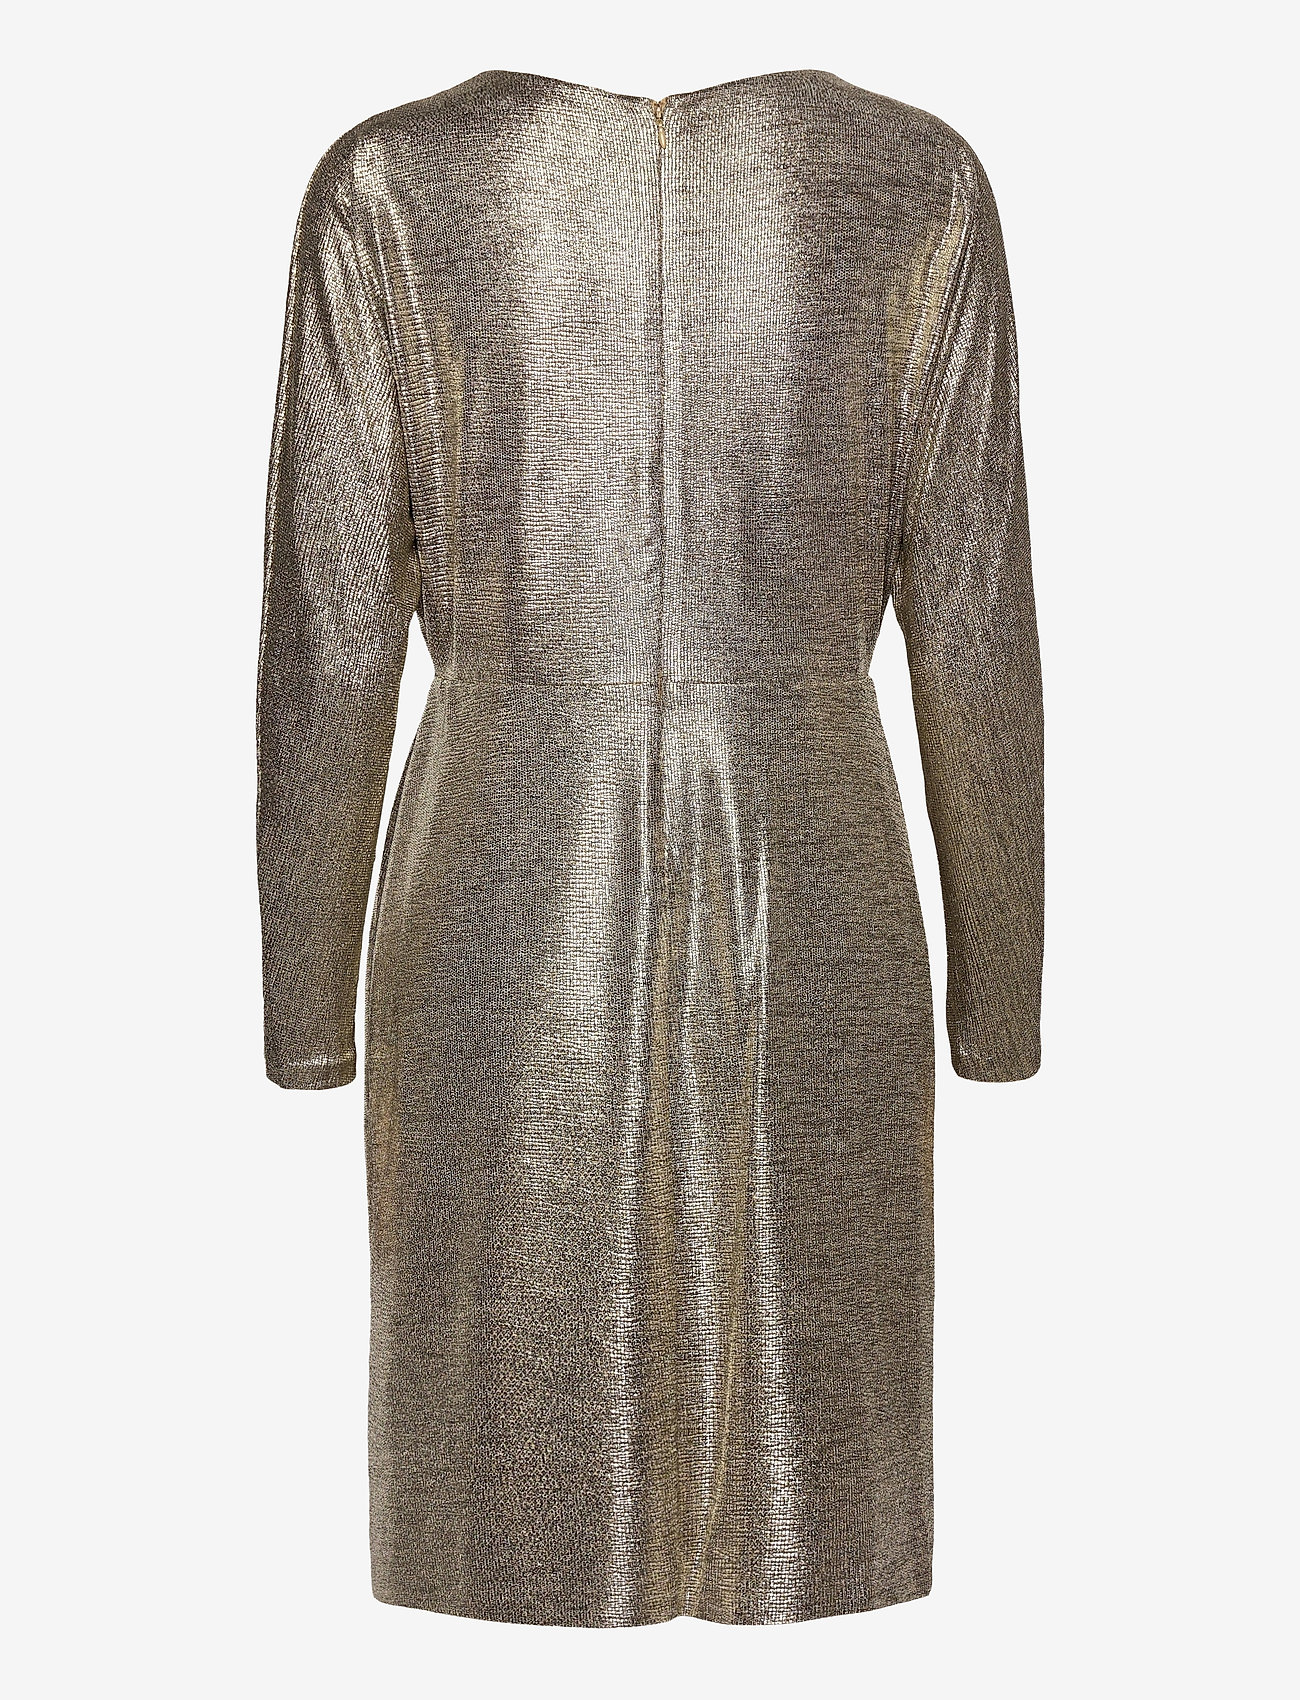 Lauren Ralph Lauren - Metallic Stretch Knit Cocktail Dress - cocktailkjoler - beige/gold - 1